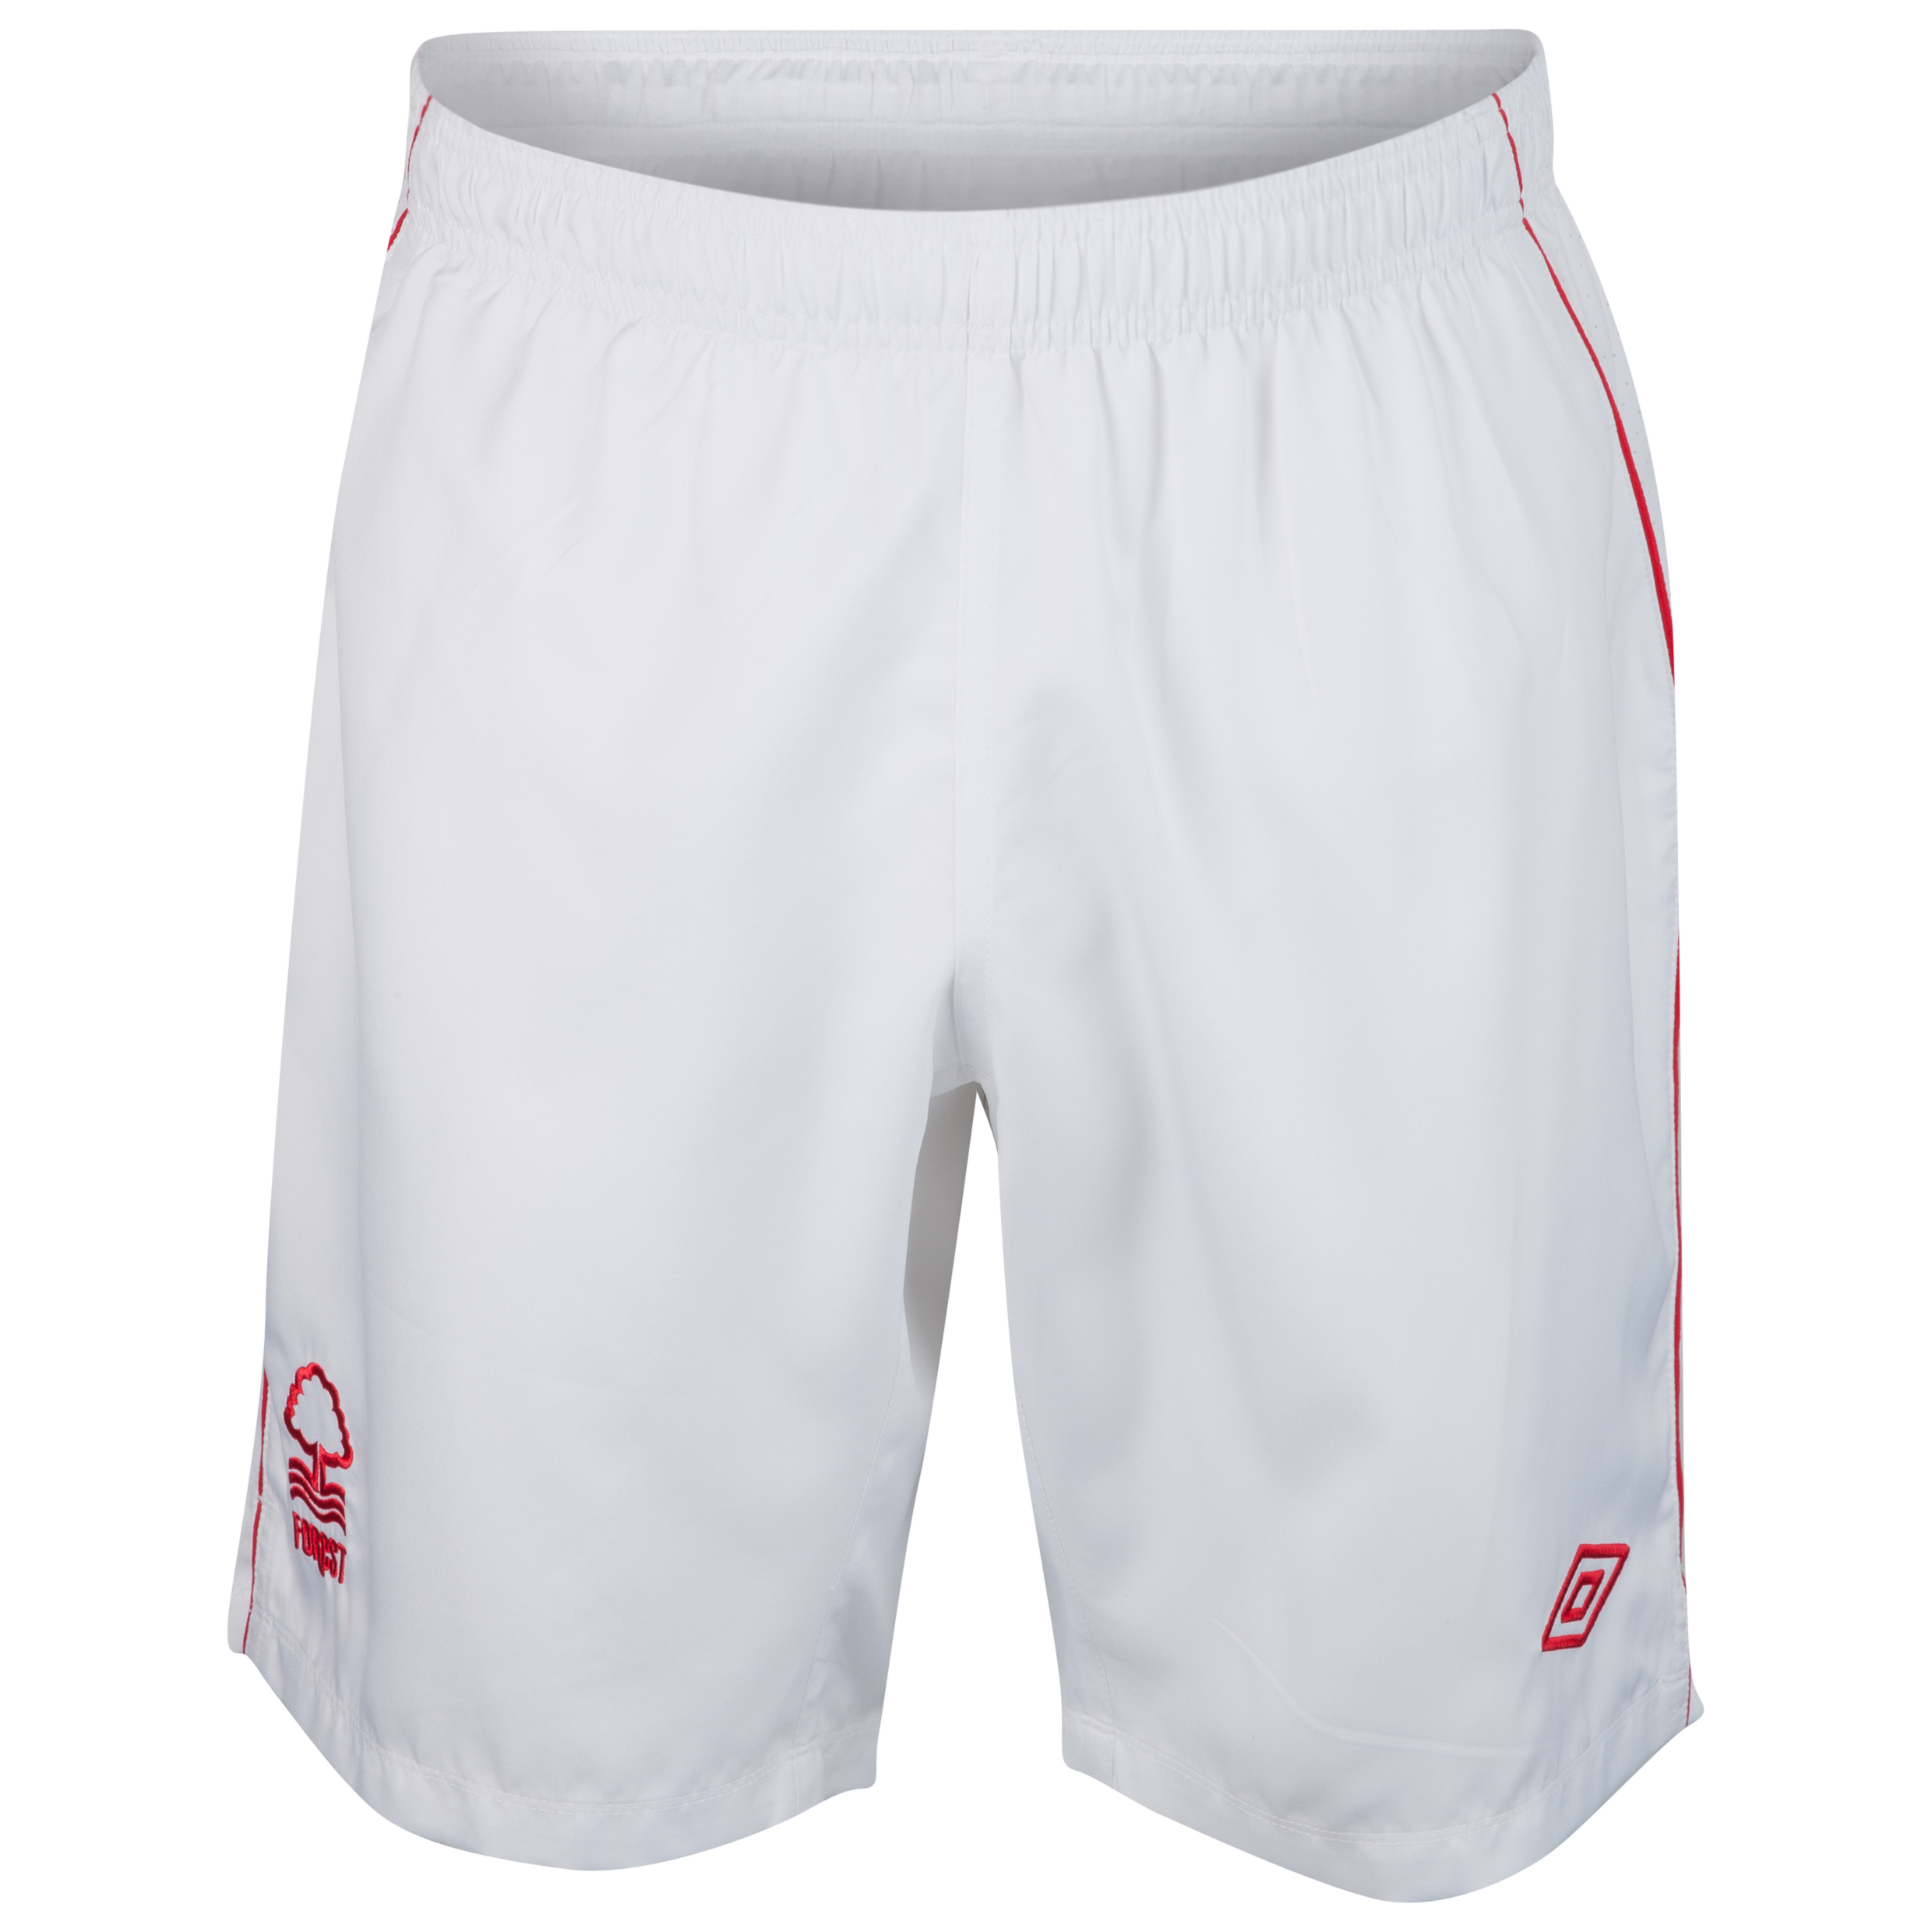 Nottingham Forest Home Short 2012/13 - Junior